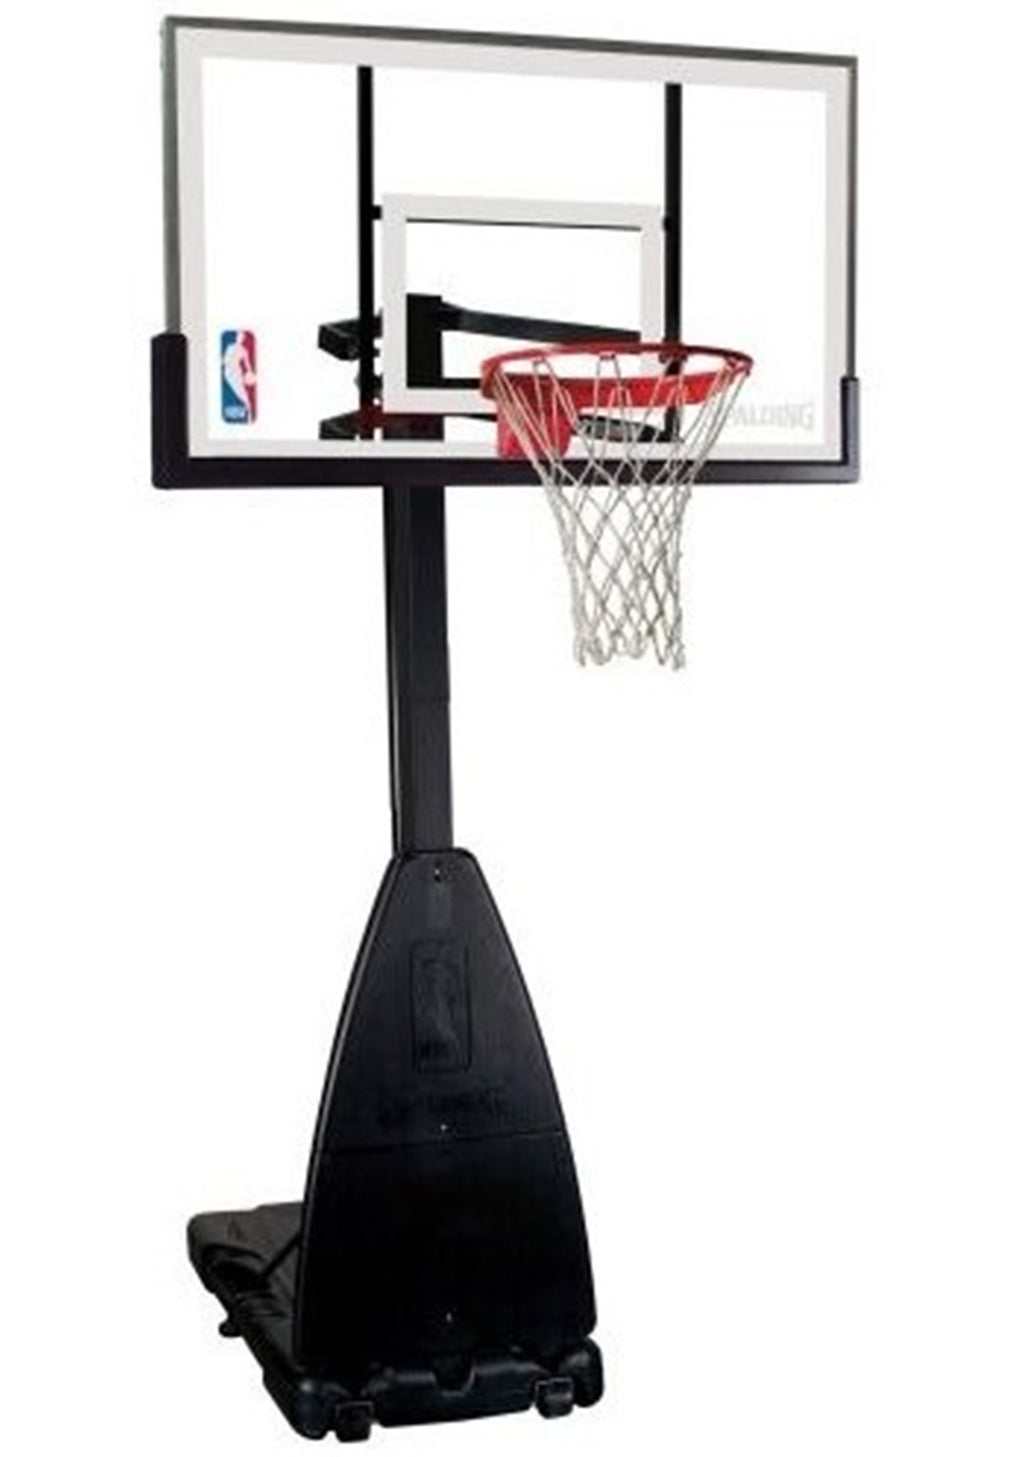 SPALDING 54 INCH TEMPERED GLASS BASKETBALL SYSTEM (PRE-ORDER FOR DECEMBER 2020)